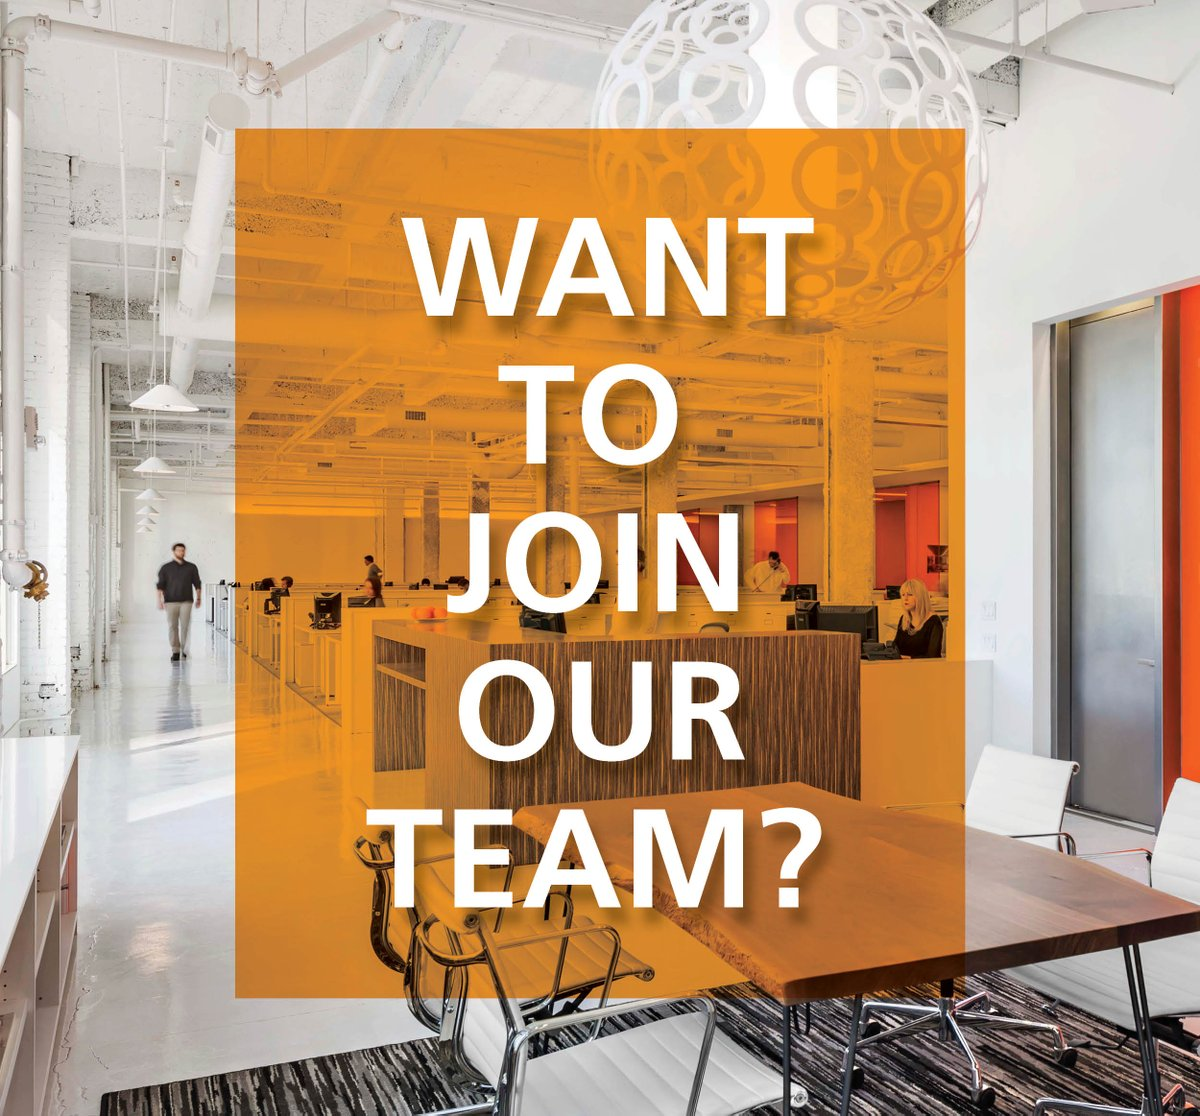 Amenta Emma On Twitter We Re Hiring In Boston Entry Level And Experienced Project Architect Positions Https T Co Jldbb5v0vp